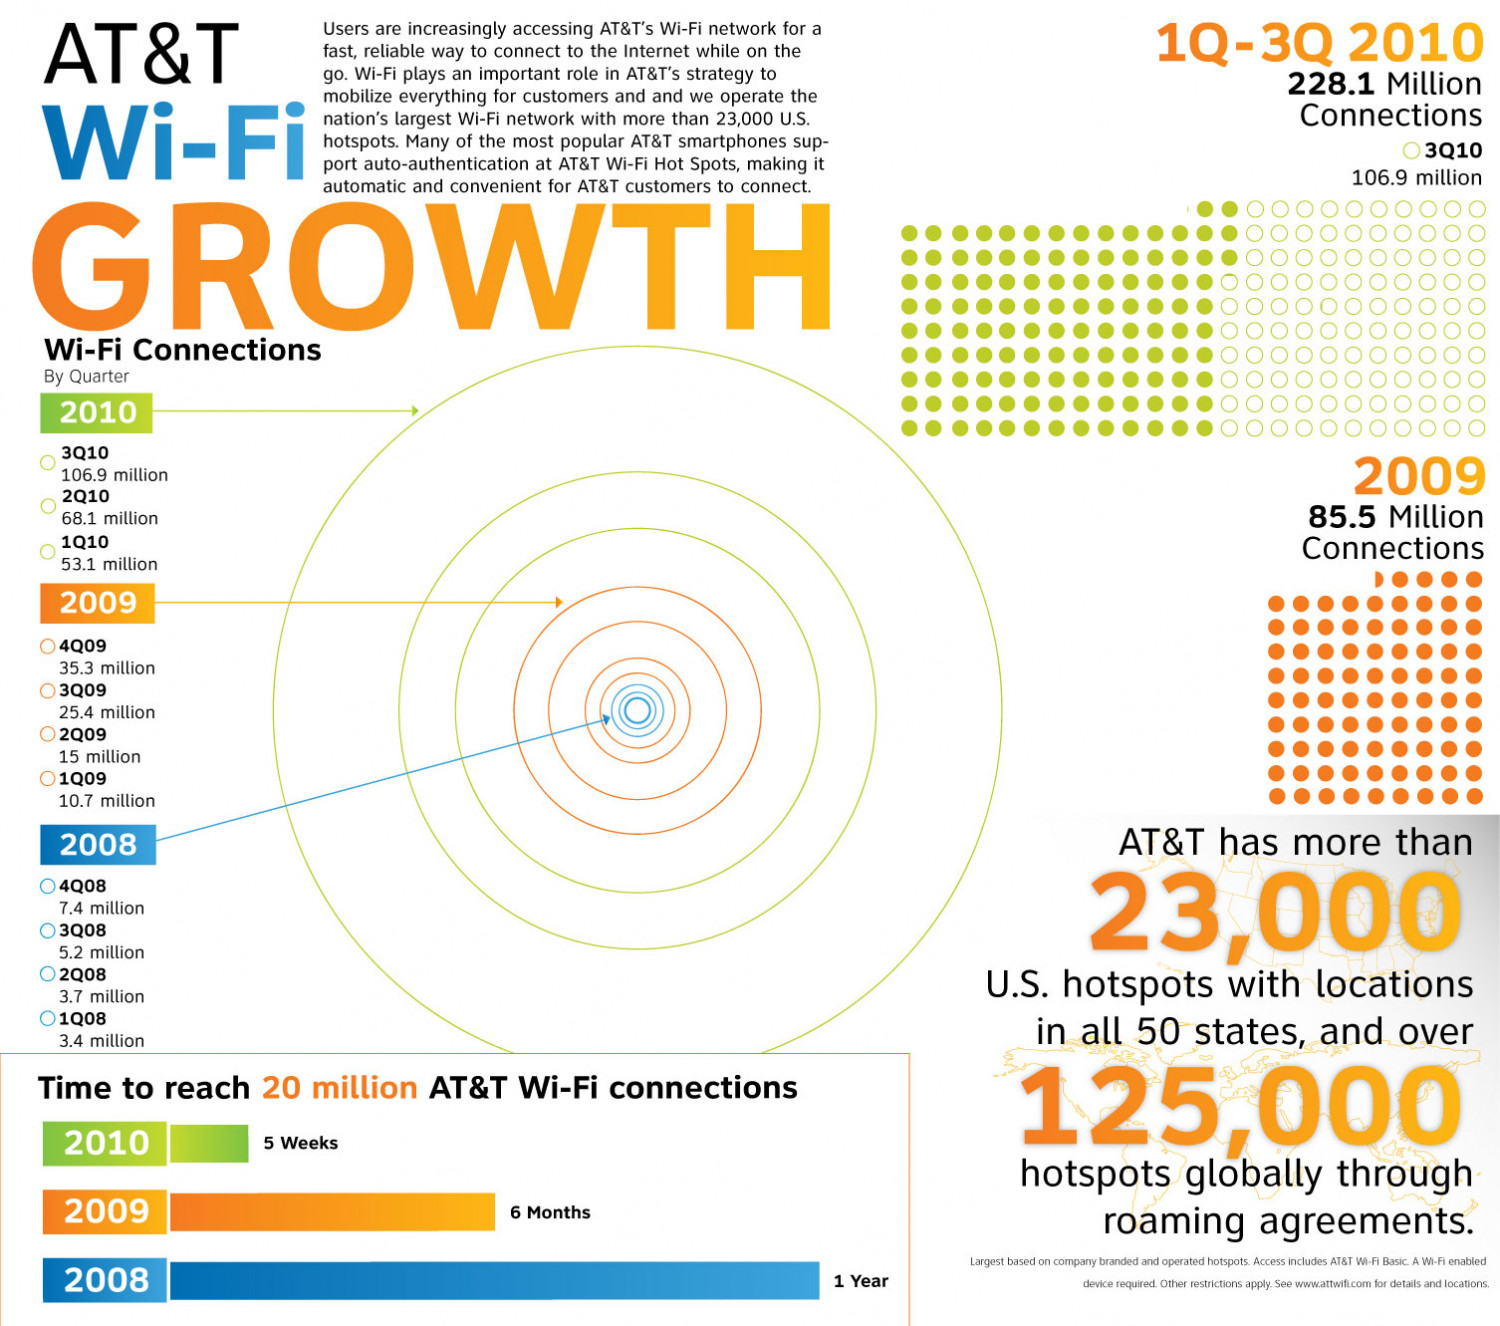 AT&T Wi-Fi Growth Infographic